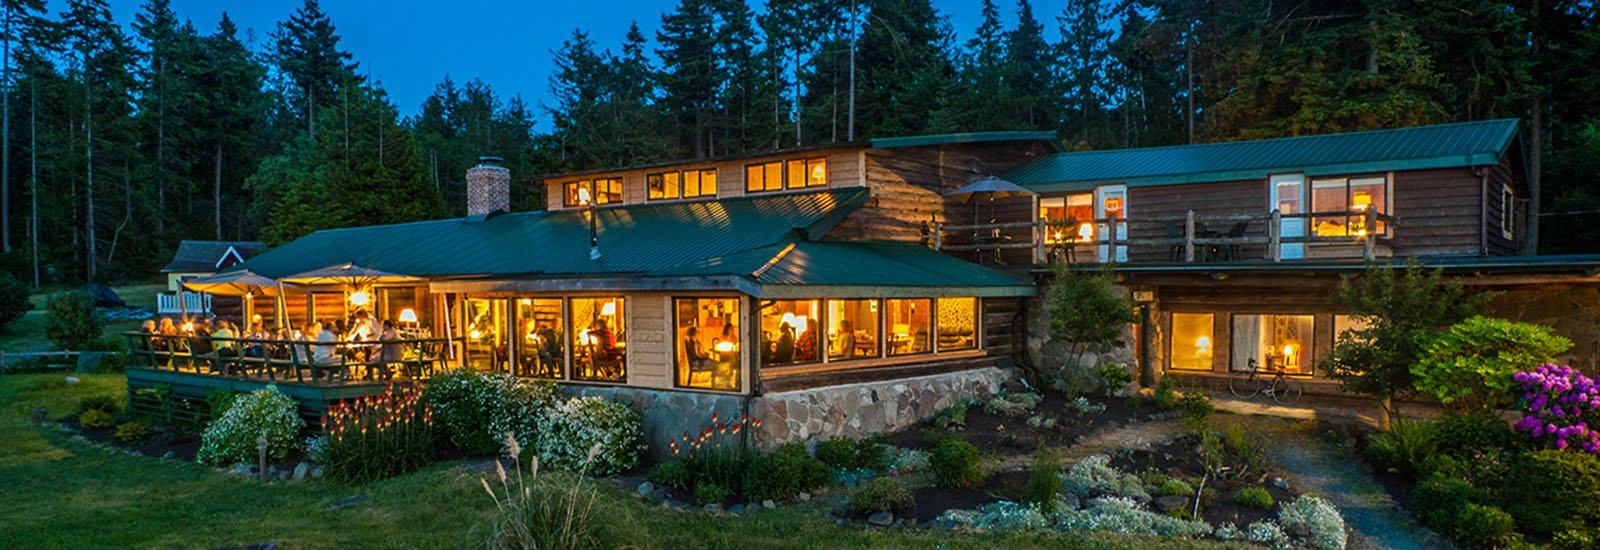 Accomodations on Gabriola